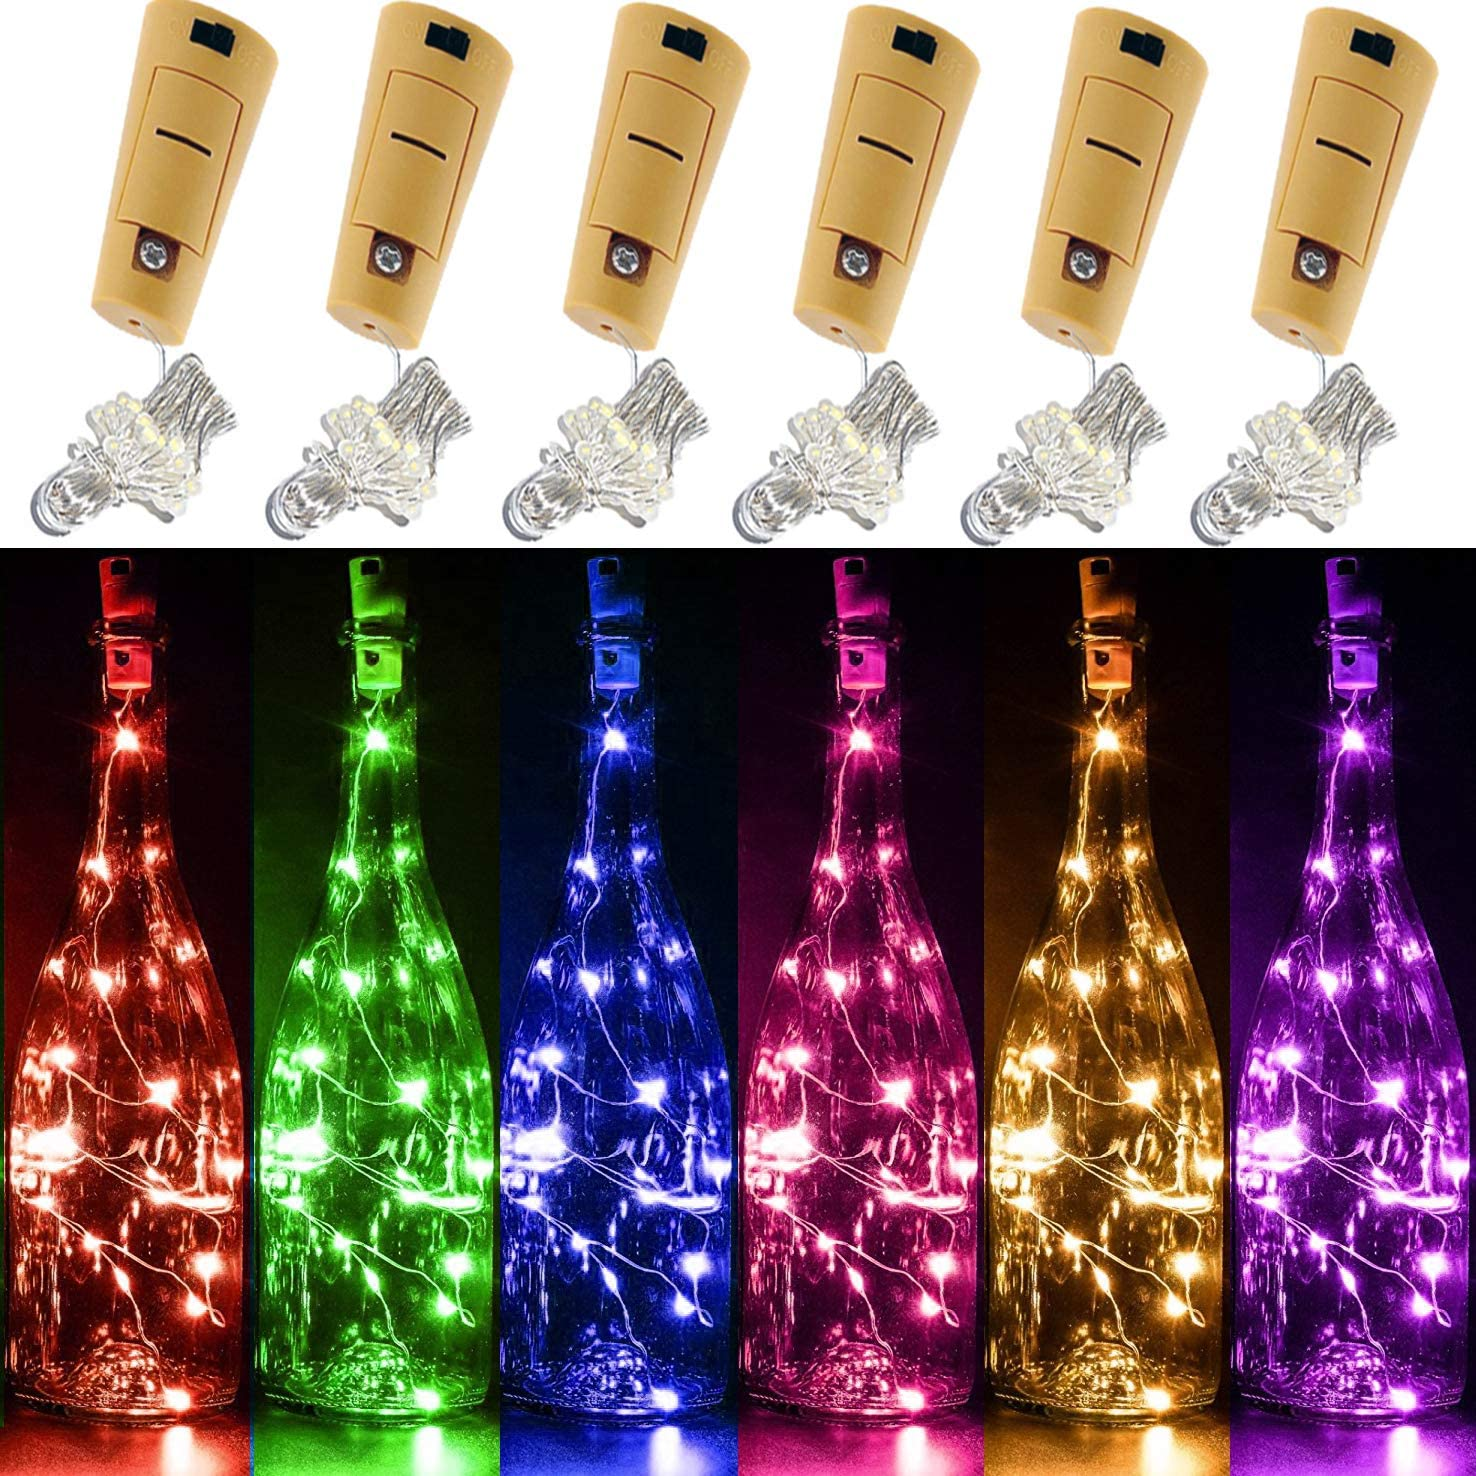 Yitee 6 PCS 6 Colors LED String Light, Battery Operated Wine Bottle Cork Lights 20 Starry LED Copper Wire Lights, 6.5 Feet 2M,Best for Mason Jar Lights,Moon Lights,Party,Wedding and Home Decoration